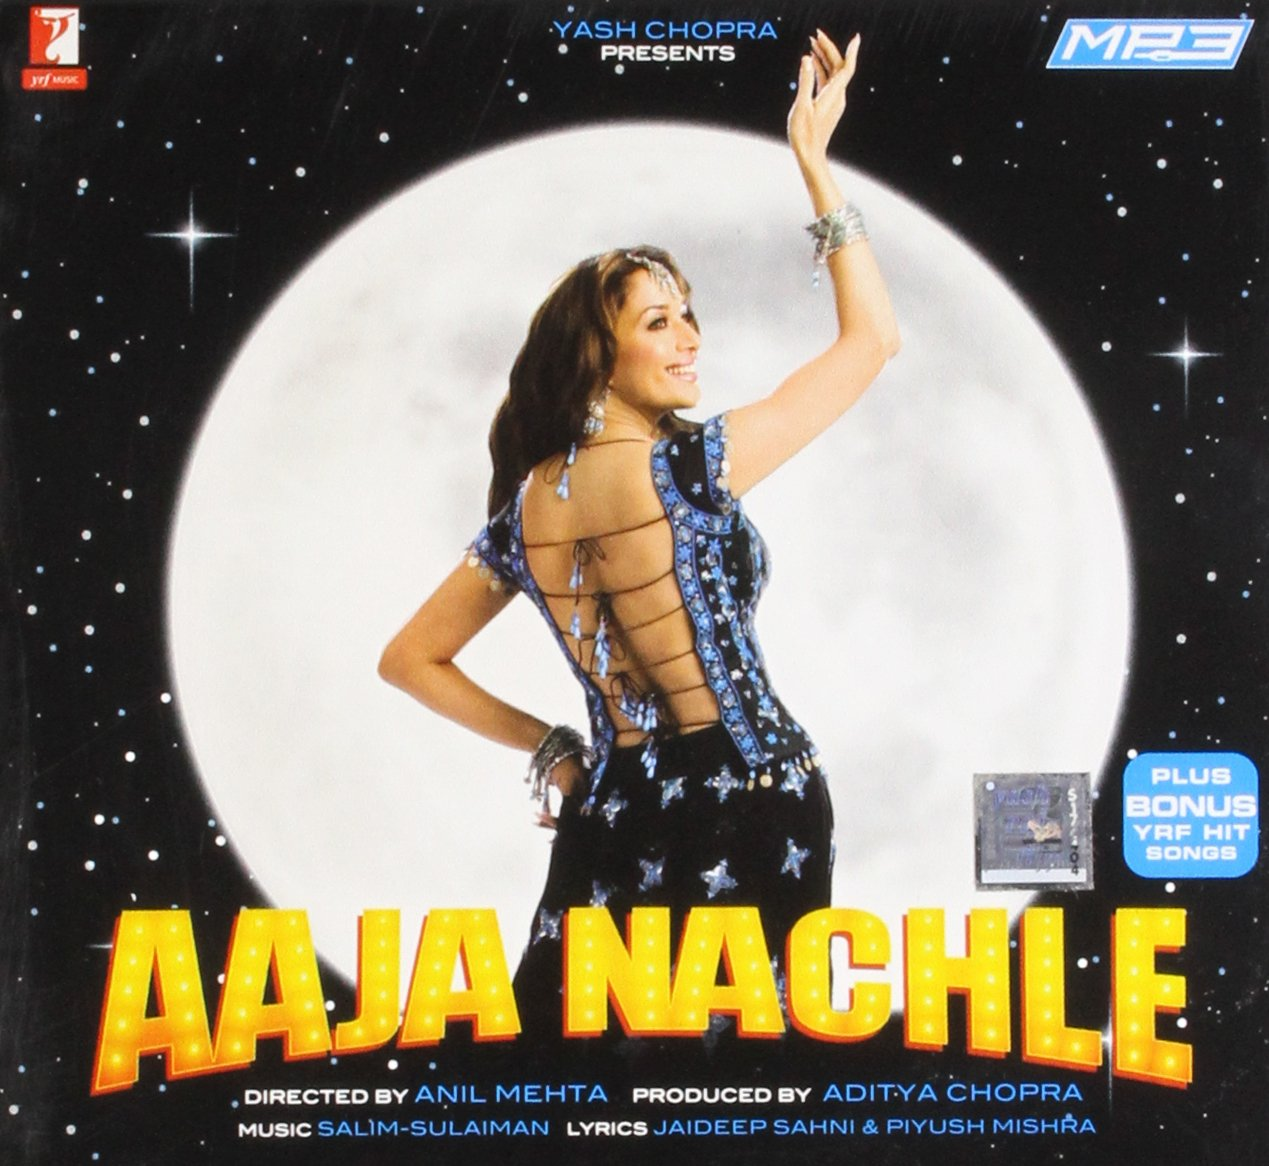 aaja nachle mp3 song free download songs pk